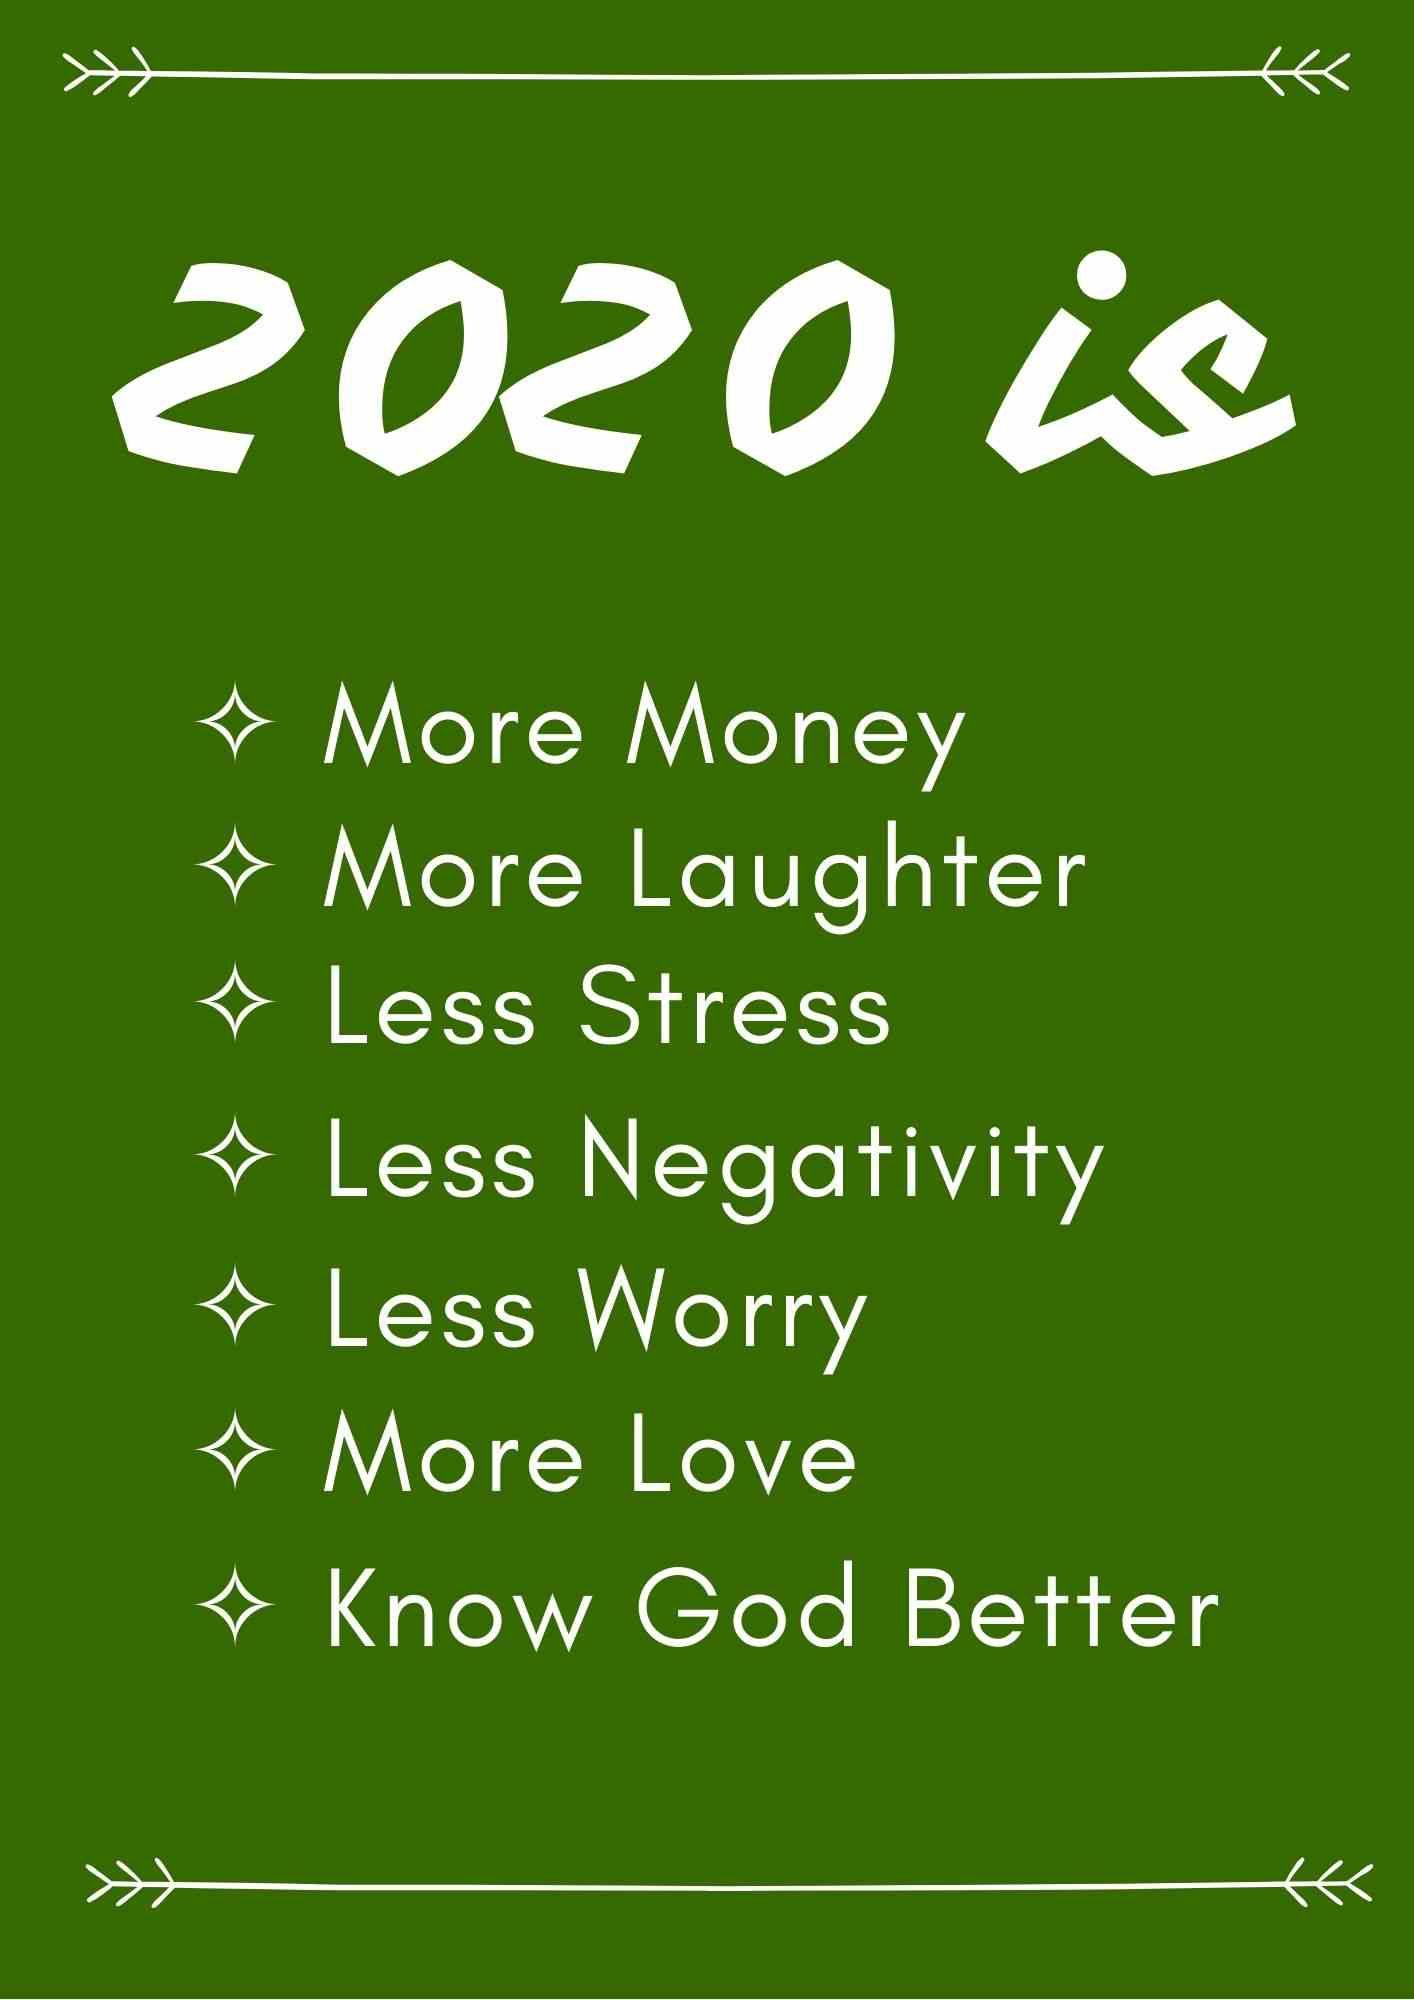 New year motivation quotes mantra 2020 for inspiration on